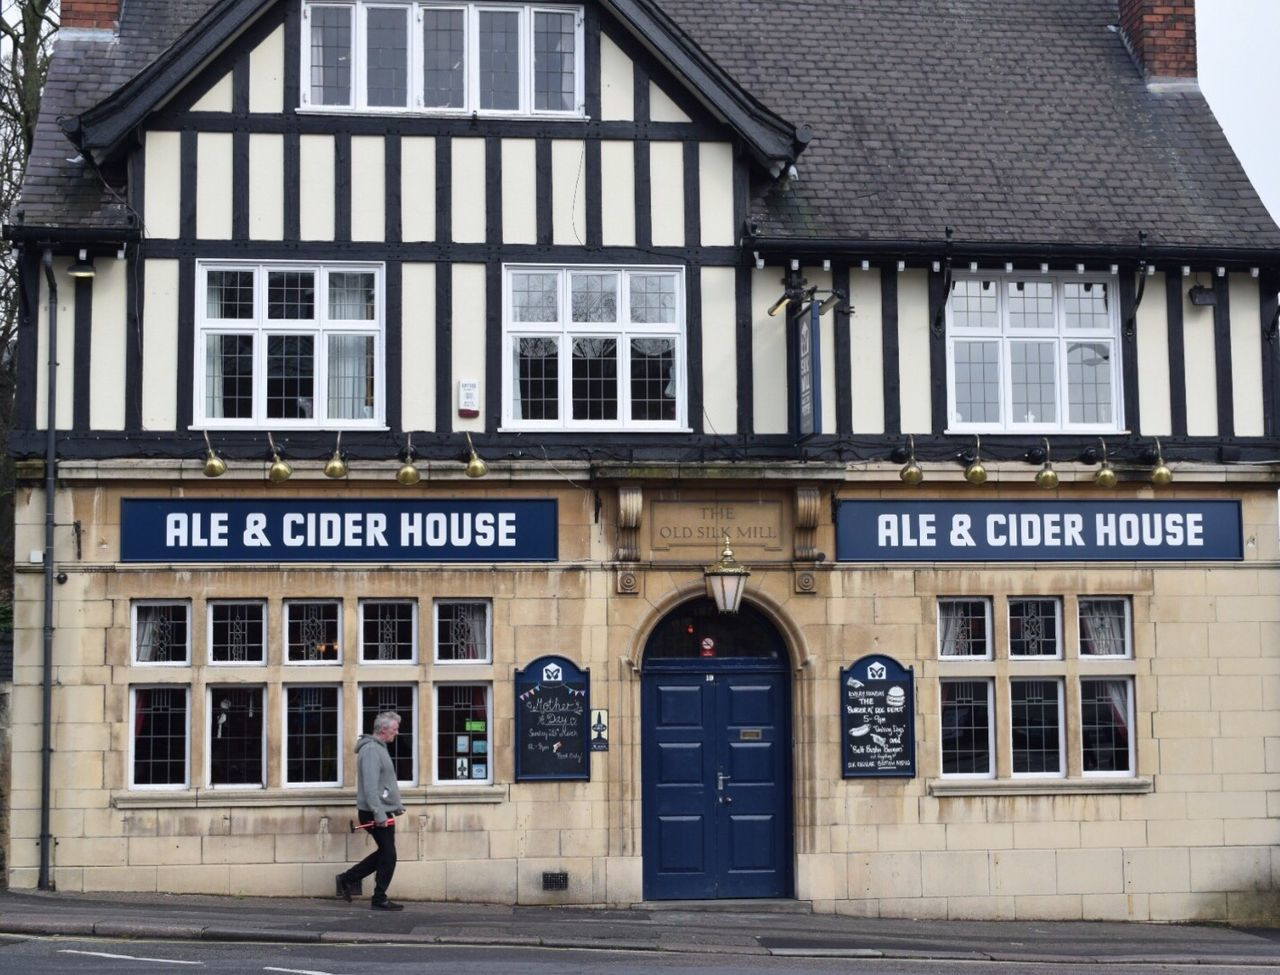 Building Exterior Built Structure Architecture Outdoors Text One Person Day Public House